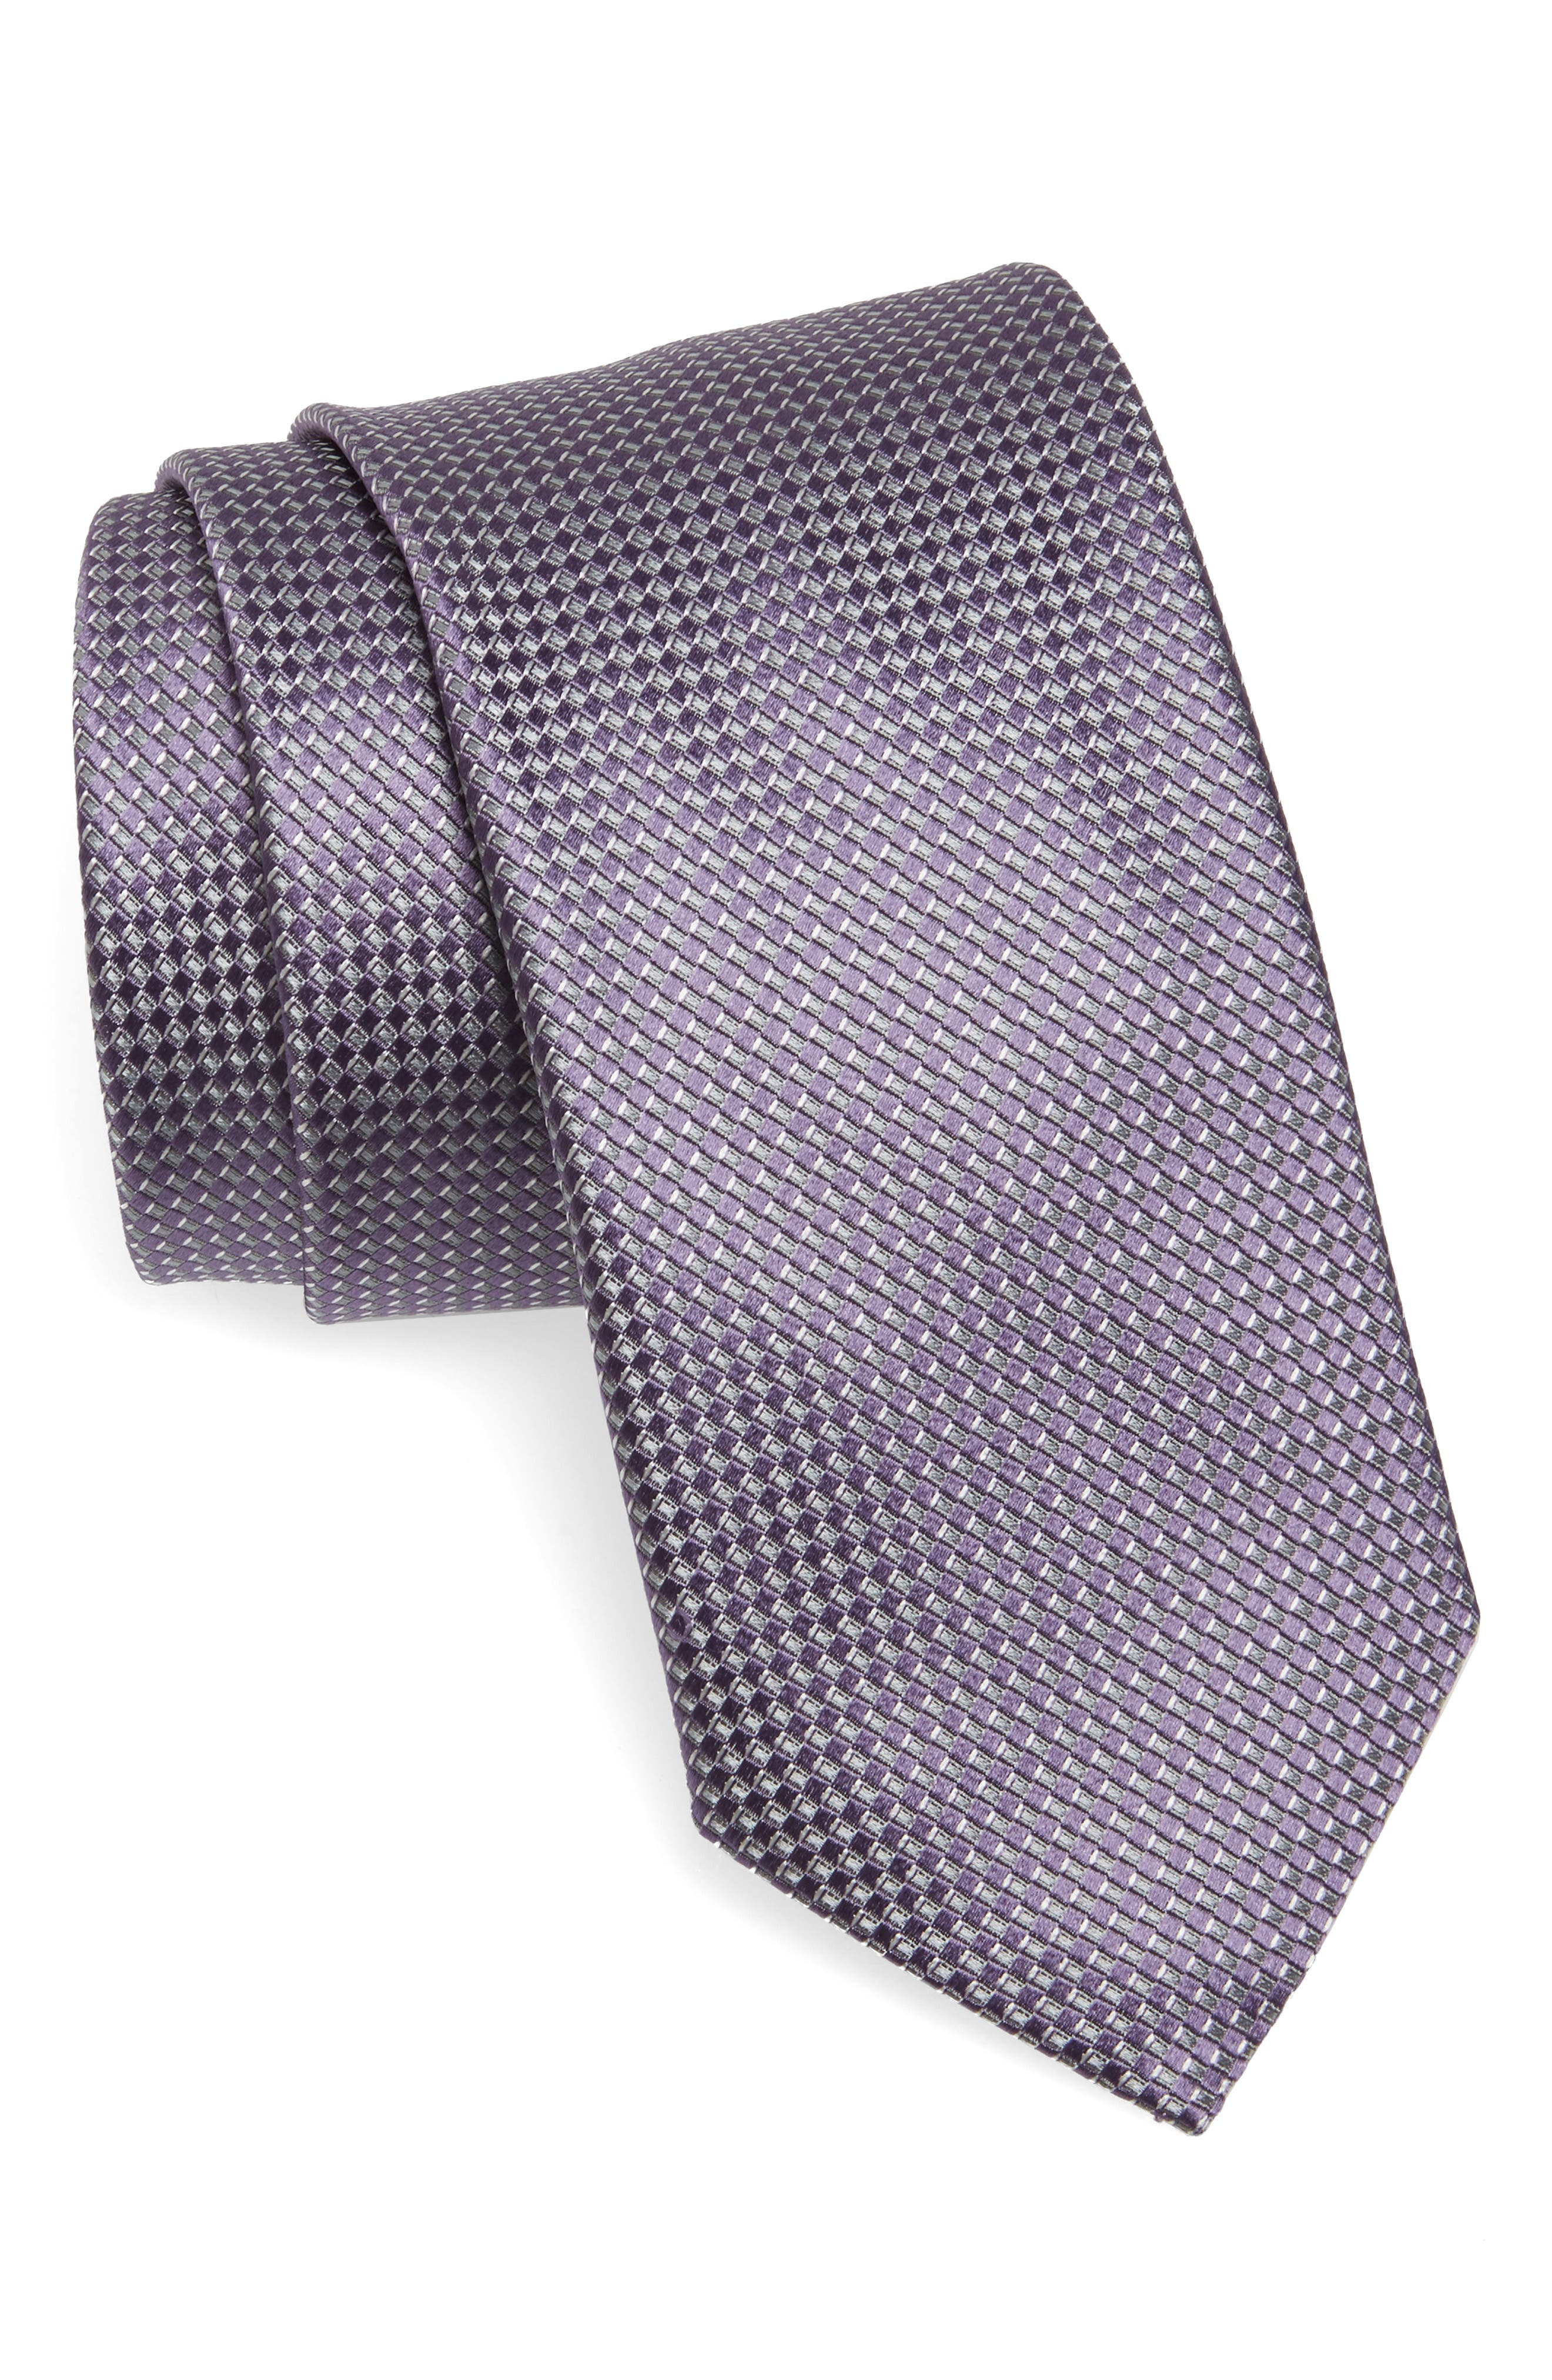 Alternate Image 1 Selected - Canali Grid Silk Tie